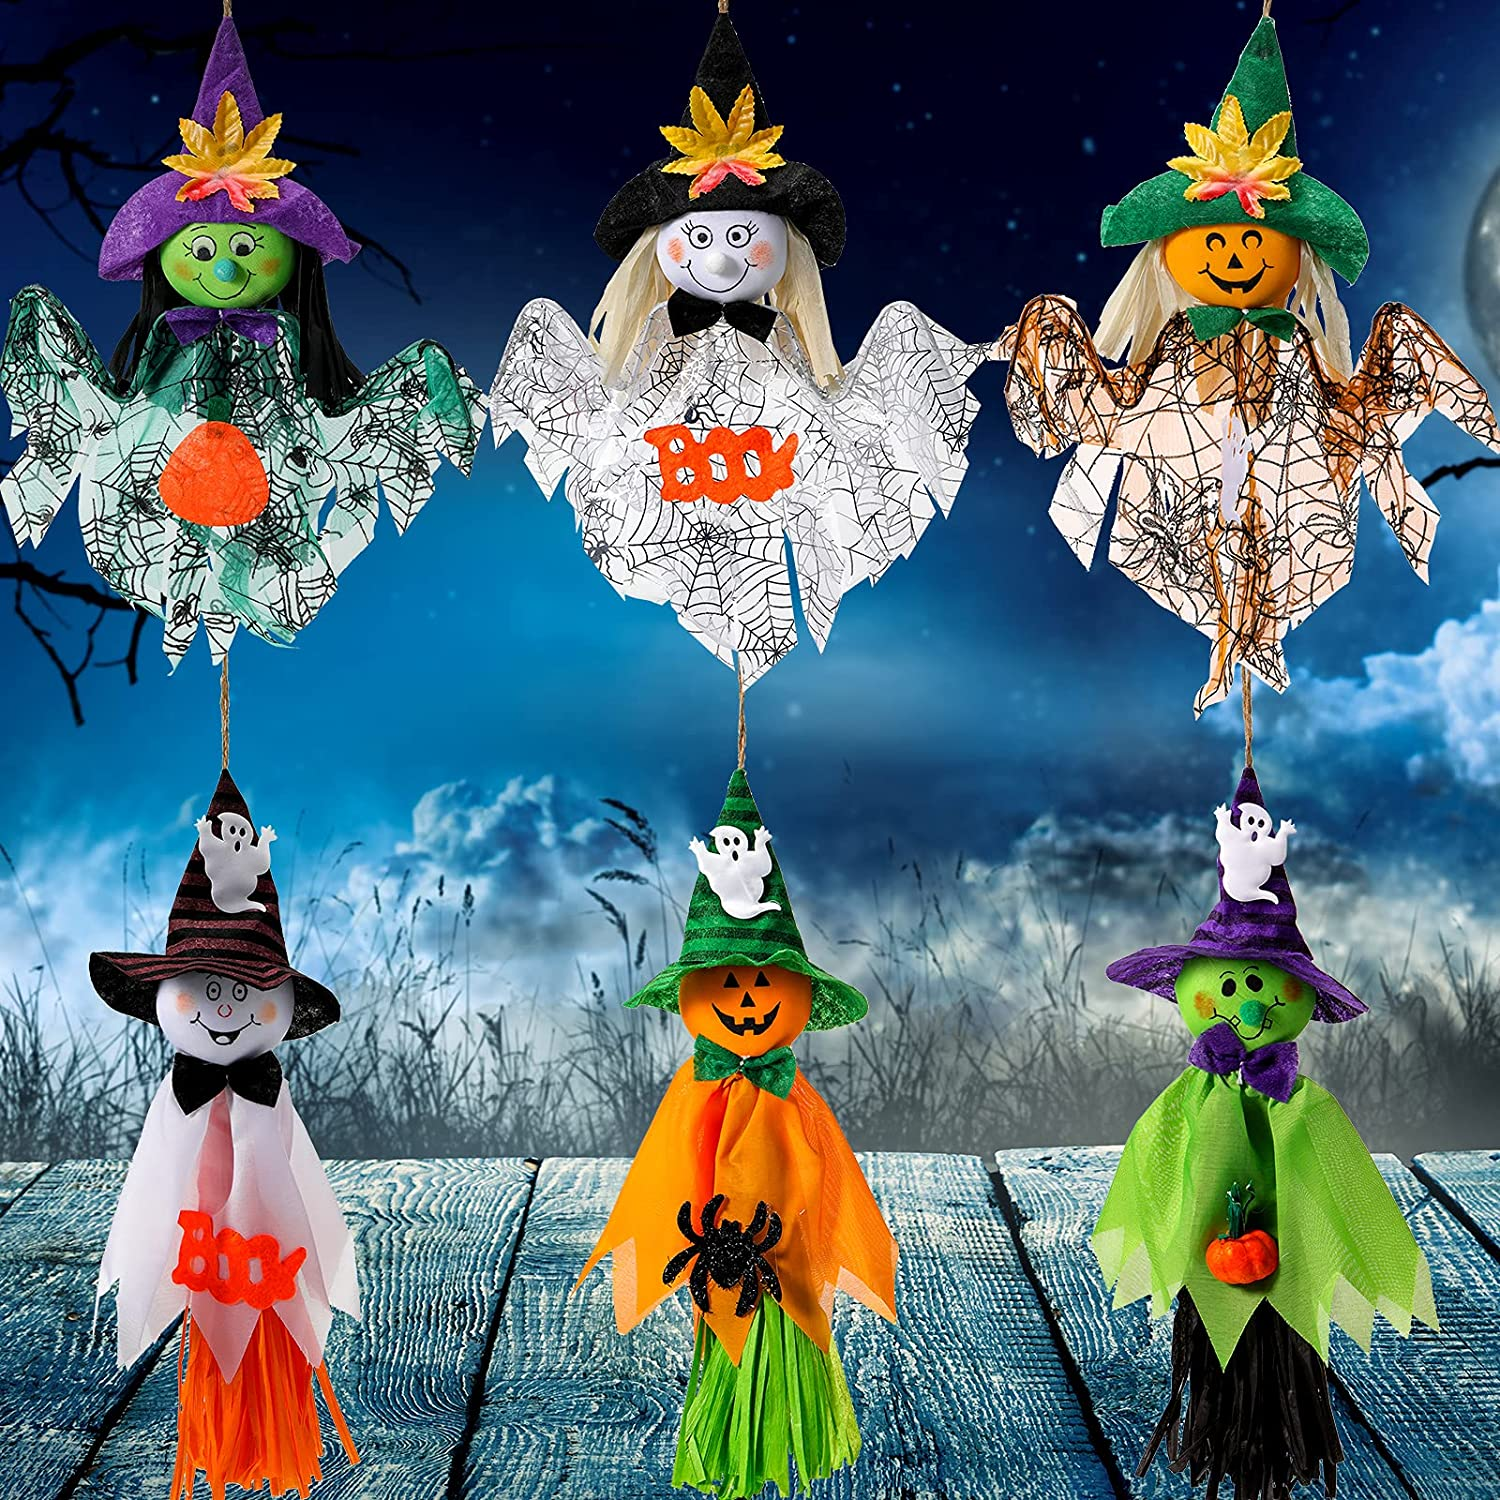 Skylety 6 Pieces Halloween Hanging Ghost Pumpkin Decoration Seattle Mall Ghos Max 85% OFF